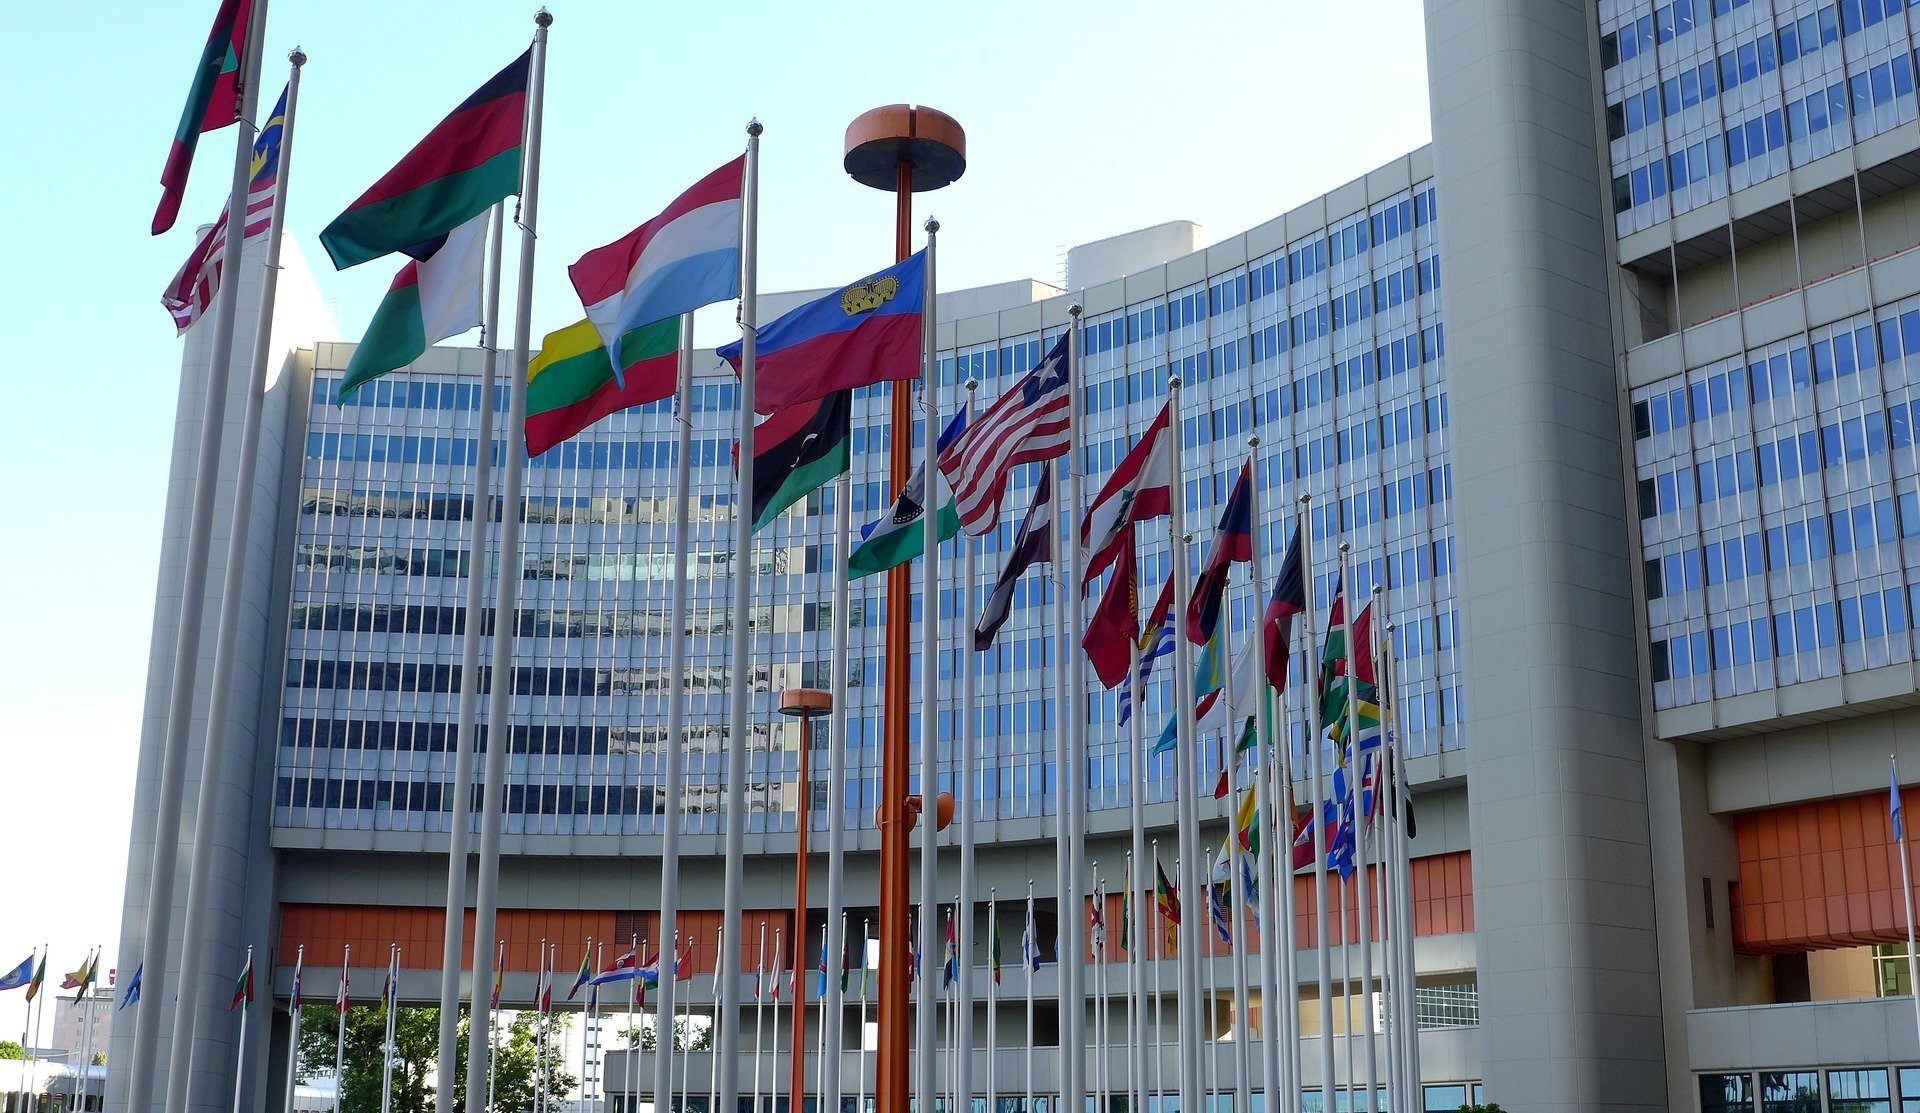 Flags outside the UN building in Vienna.